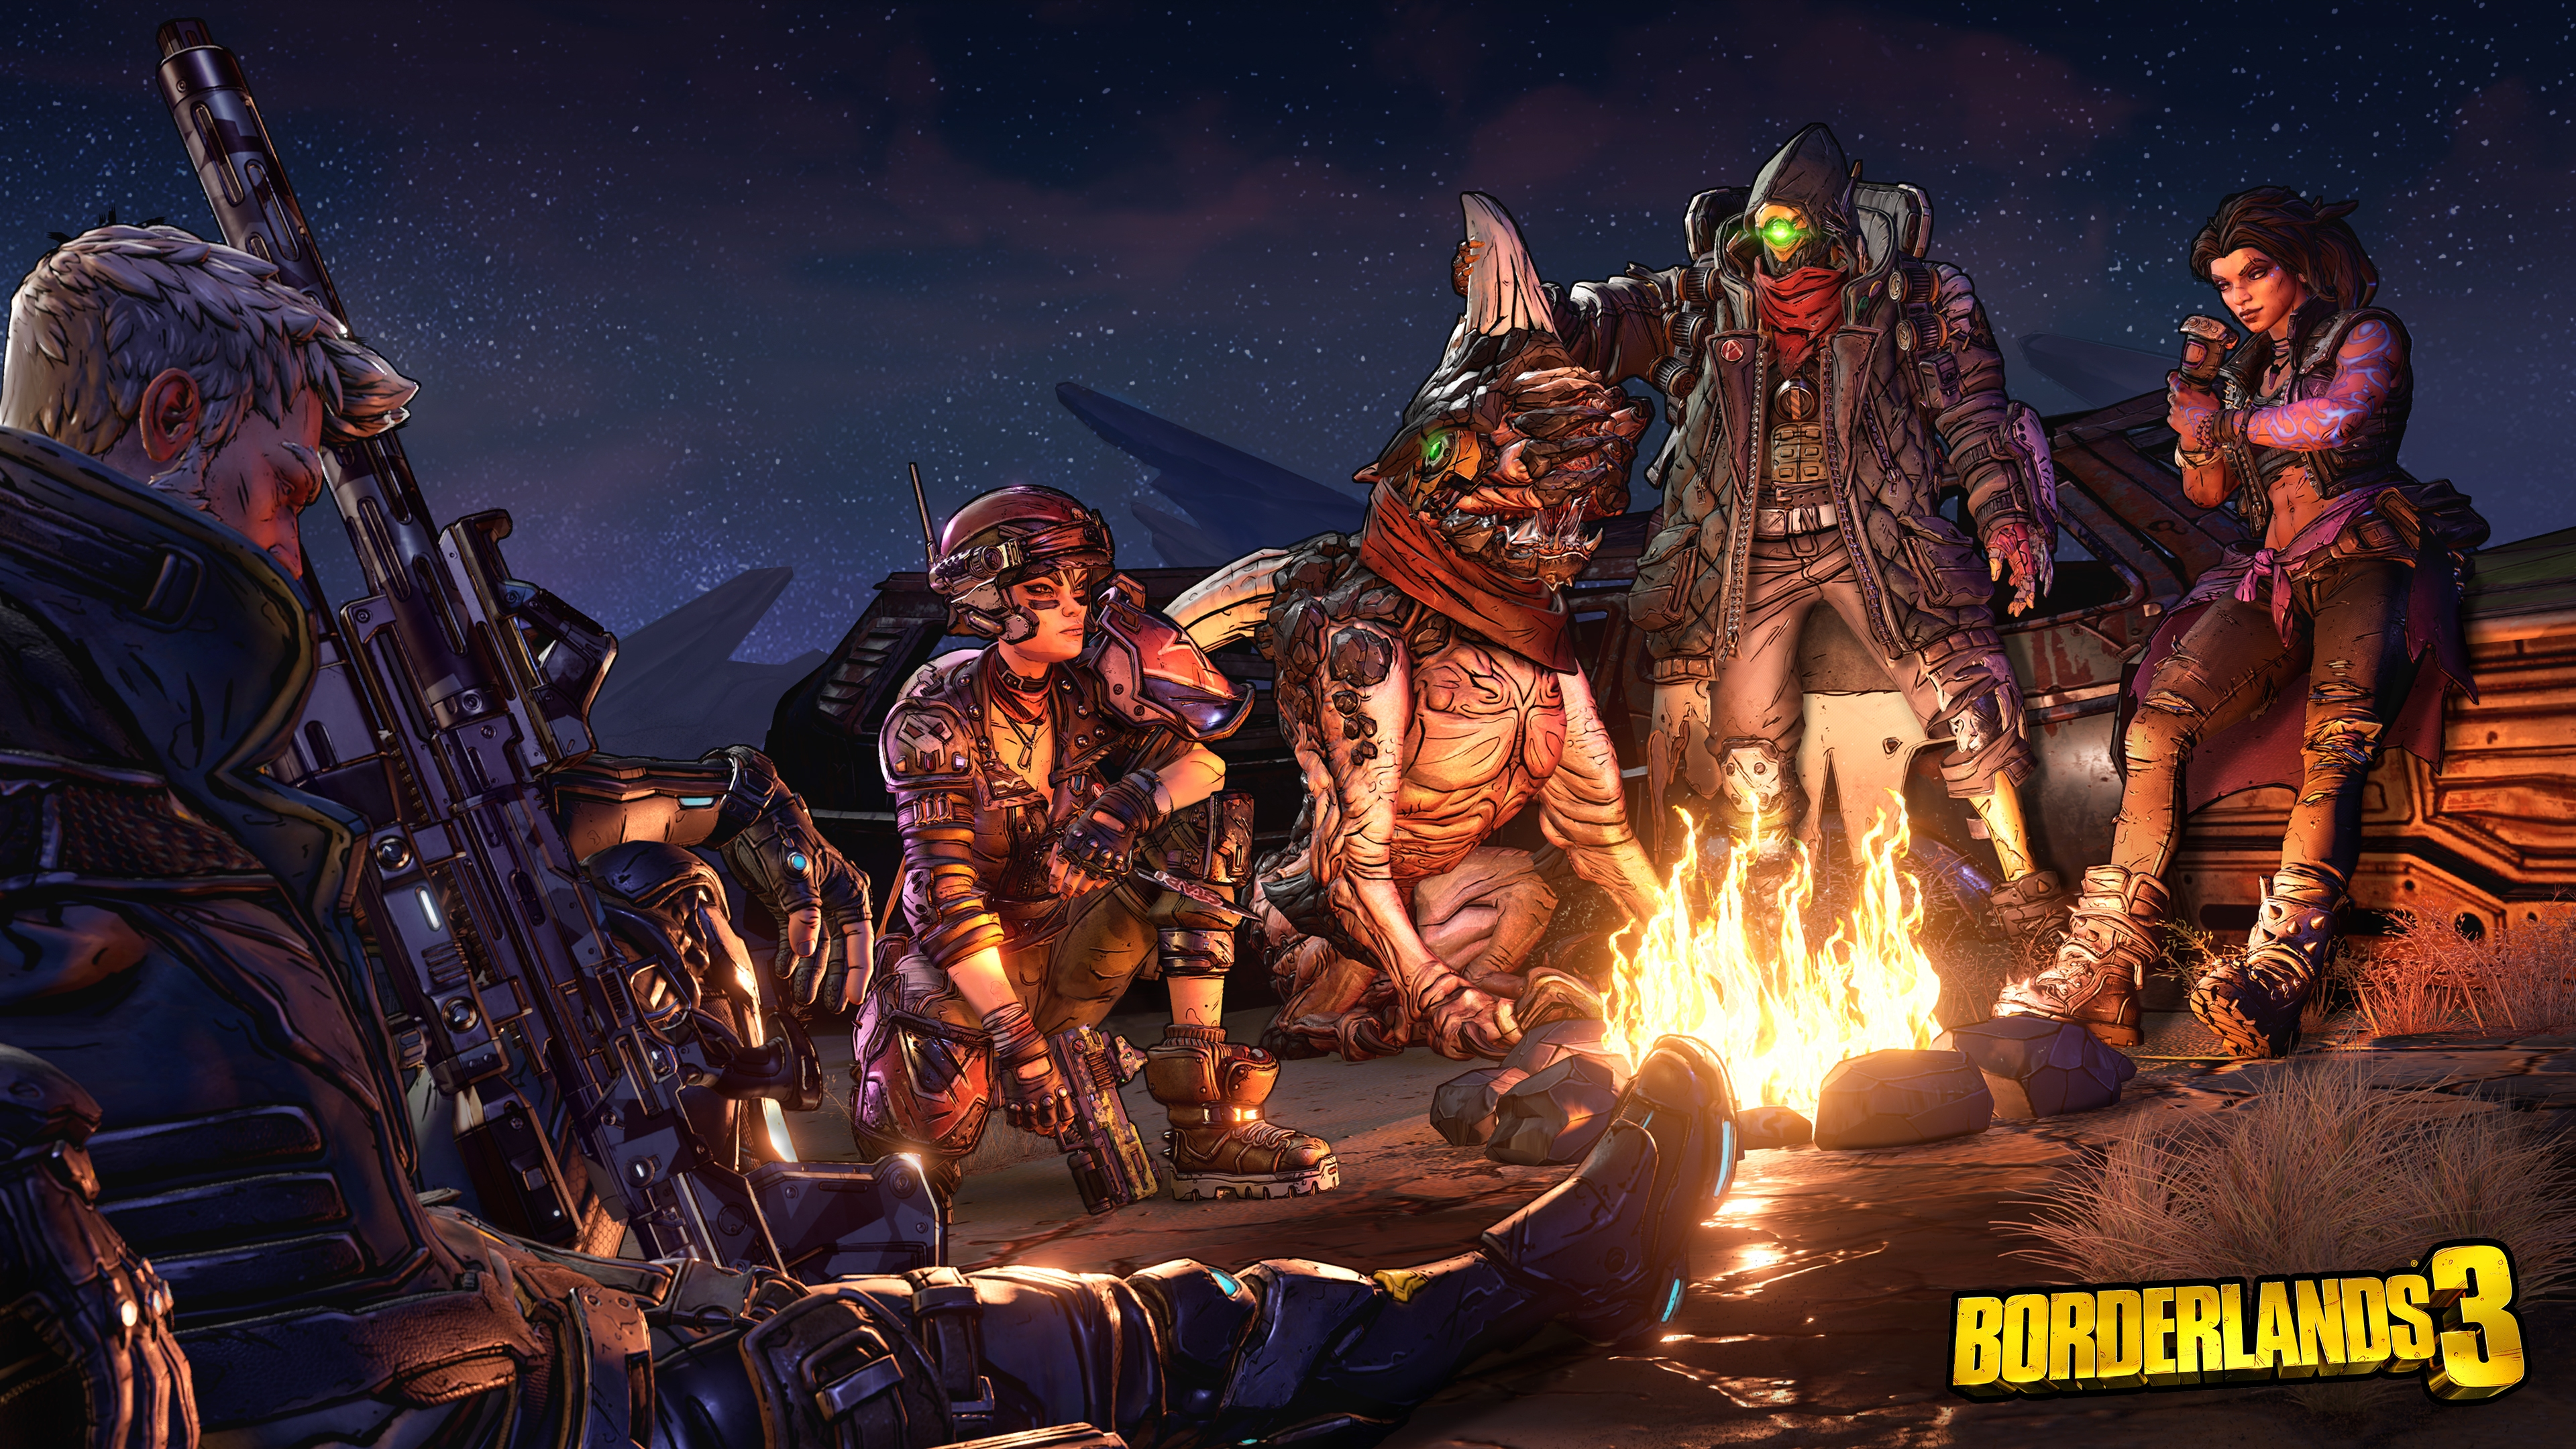 Borderlands 3 Bonfire